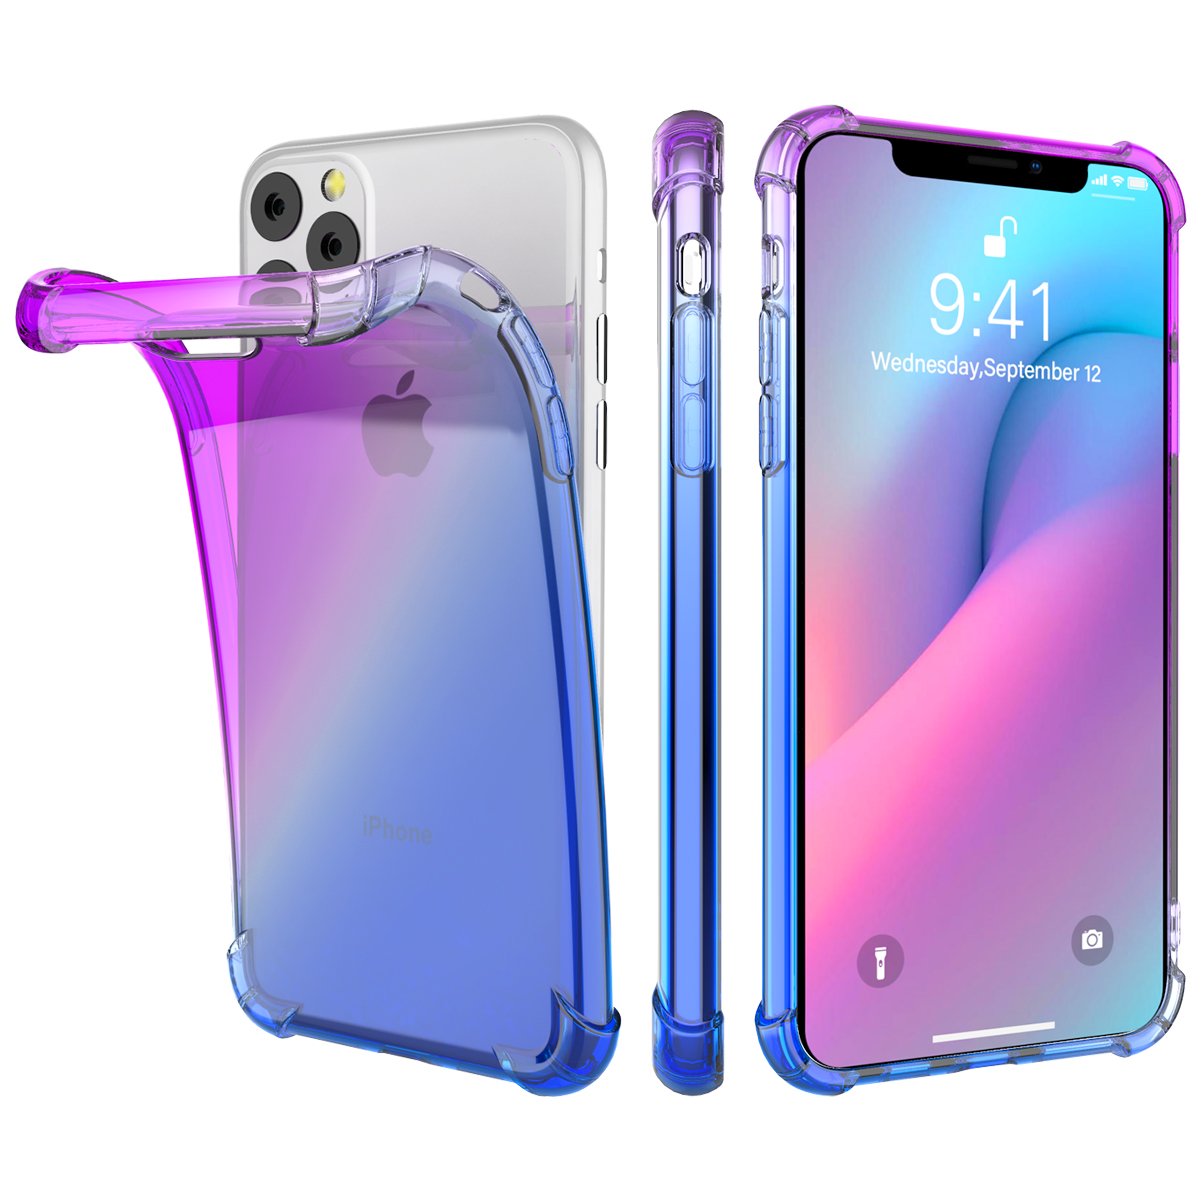 Gradient Soft TPU Case for iPhone 11/11 Pro/11 Pro Max 47